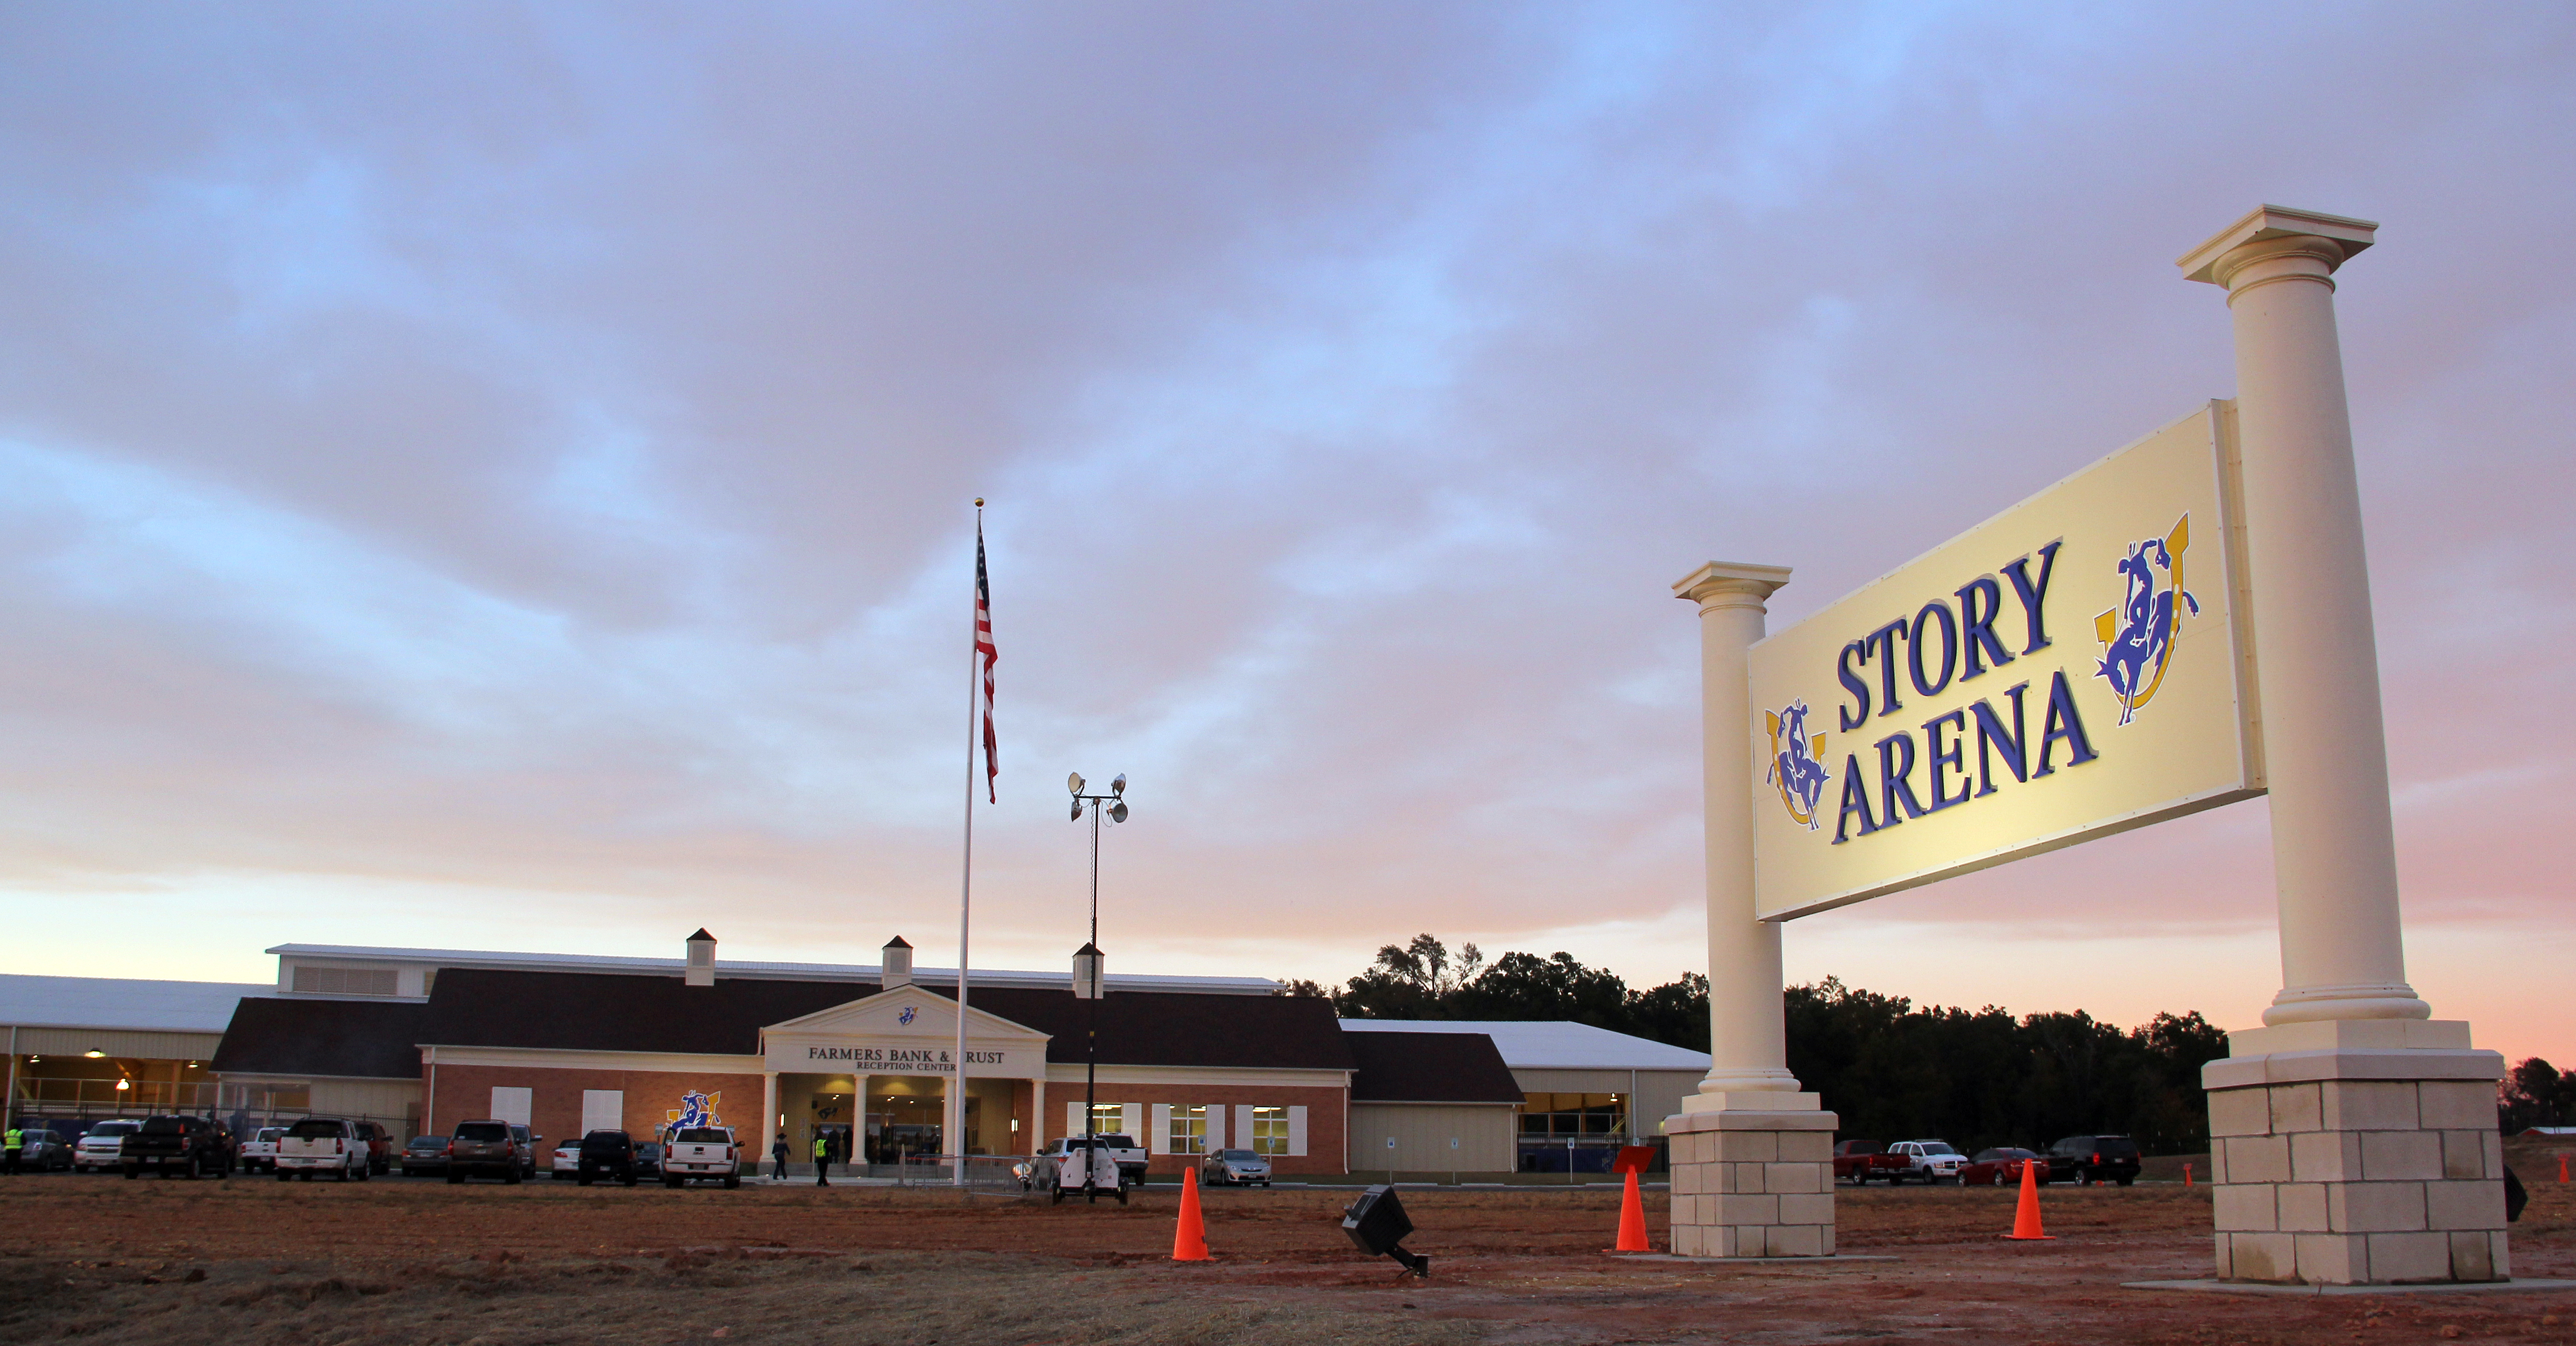 Historic Grand Opening for the $4.4 million Story Arena